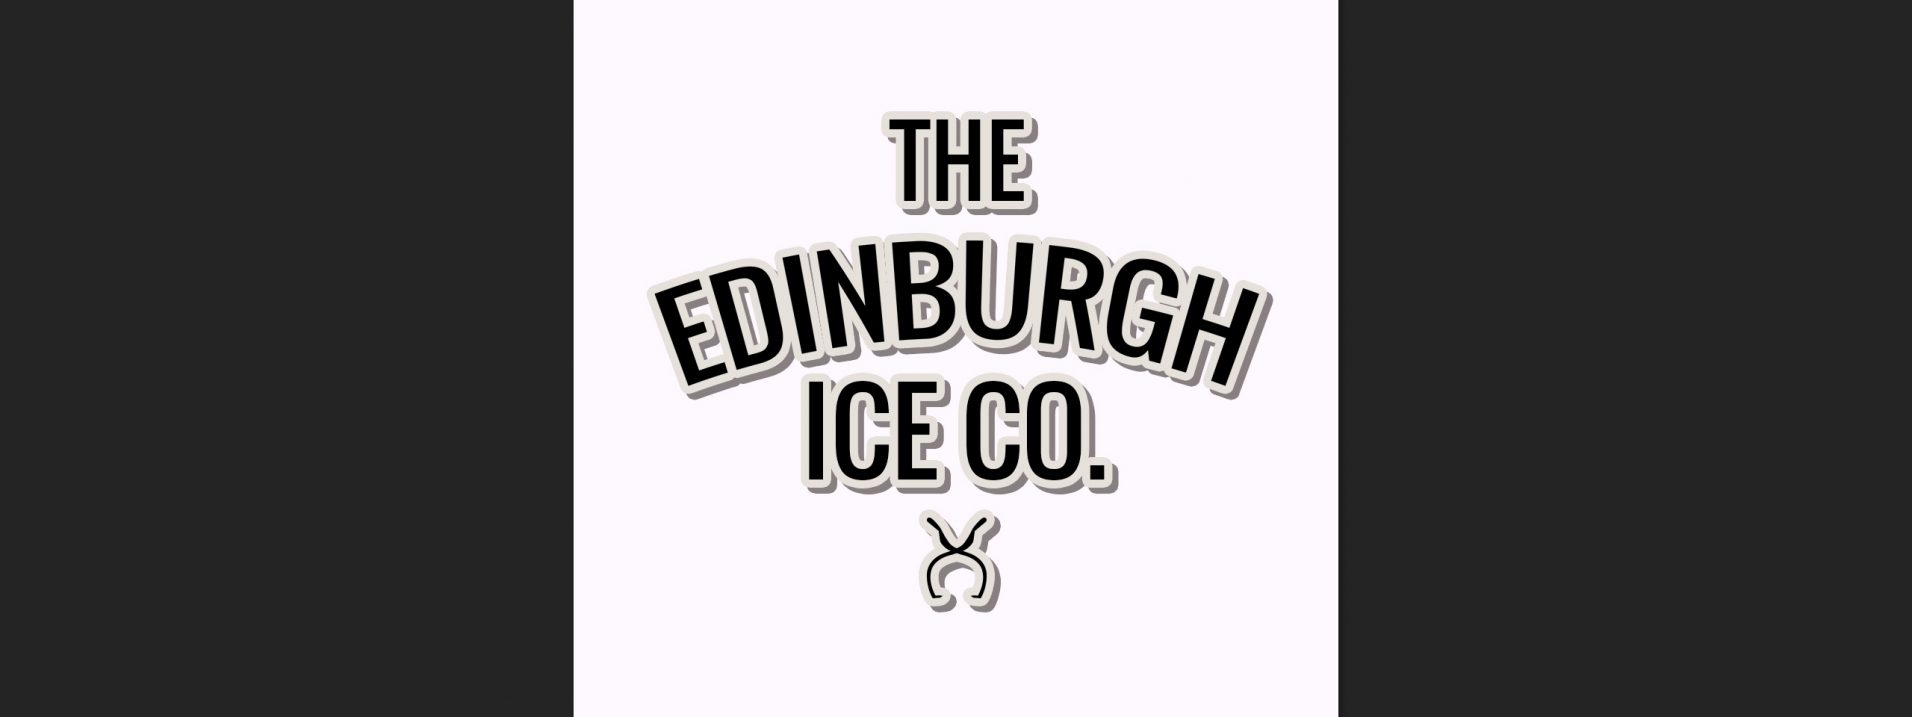 Branding design Created for the Edinburgh Ice Co.